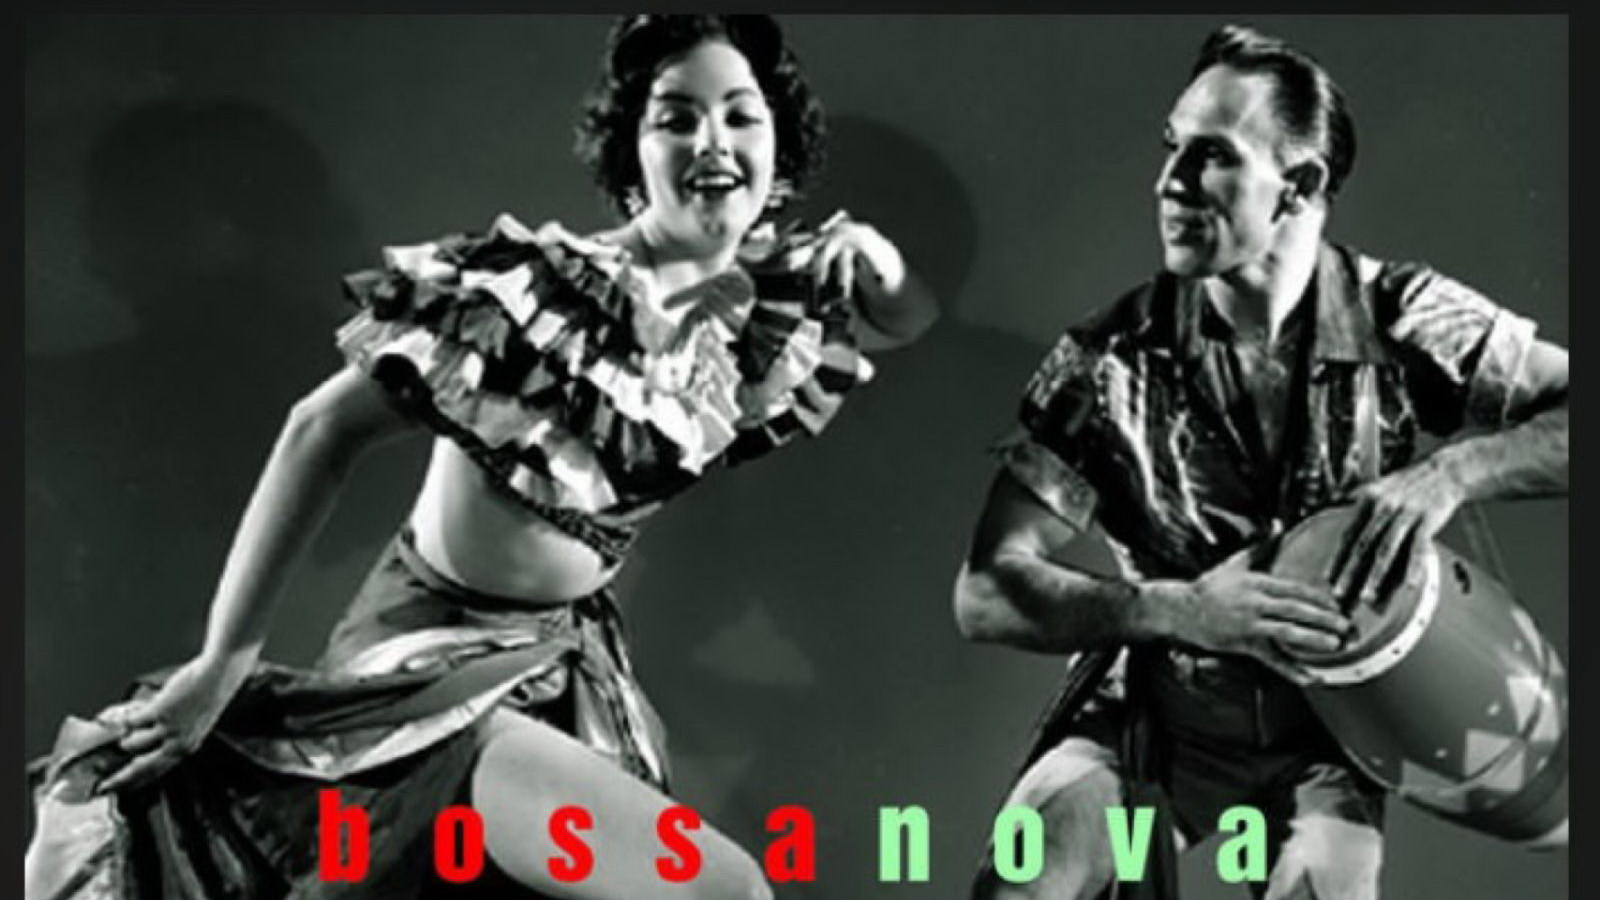 Be the boss with these bossa nova tracks